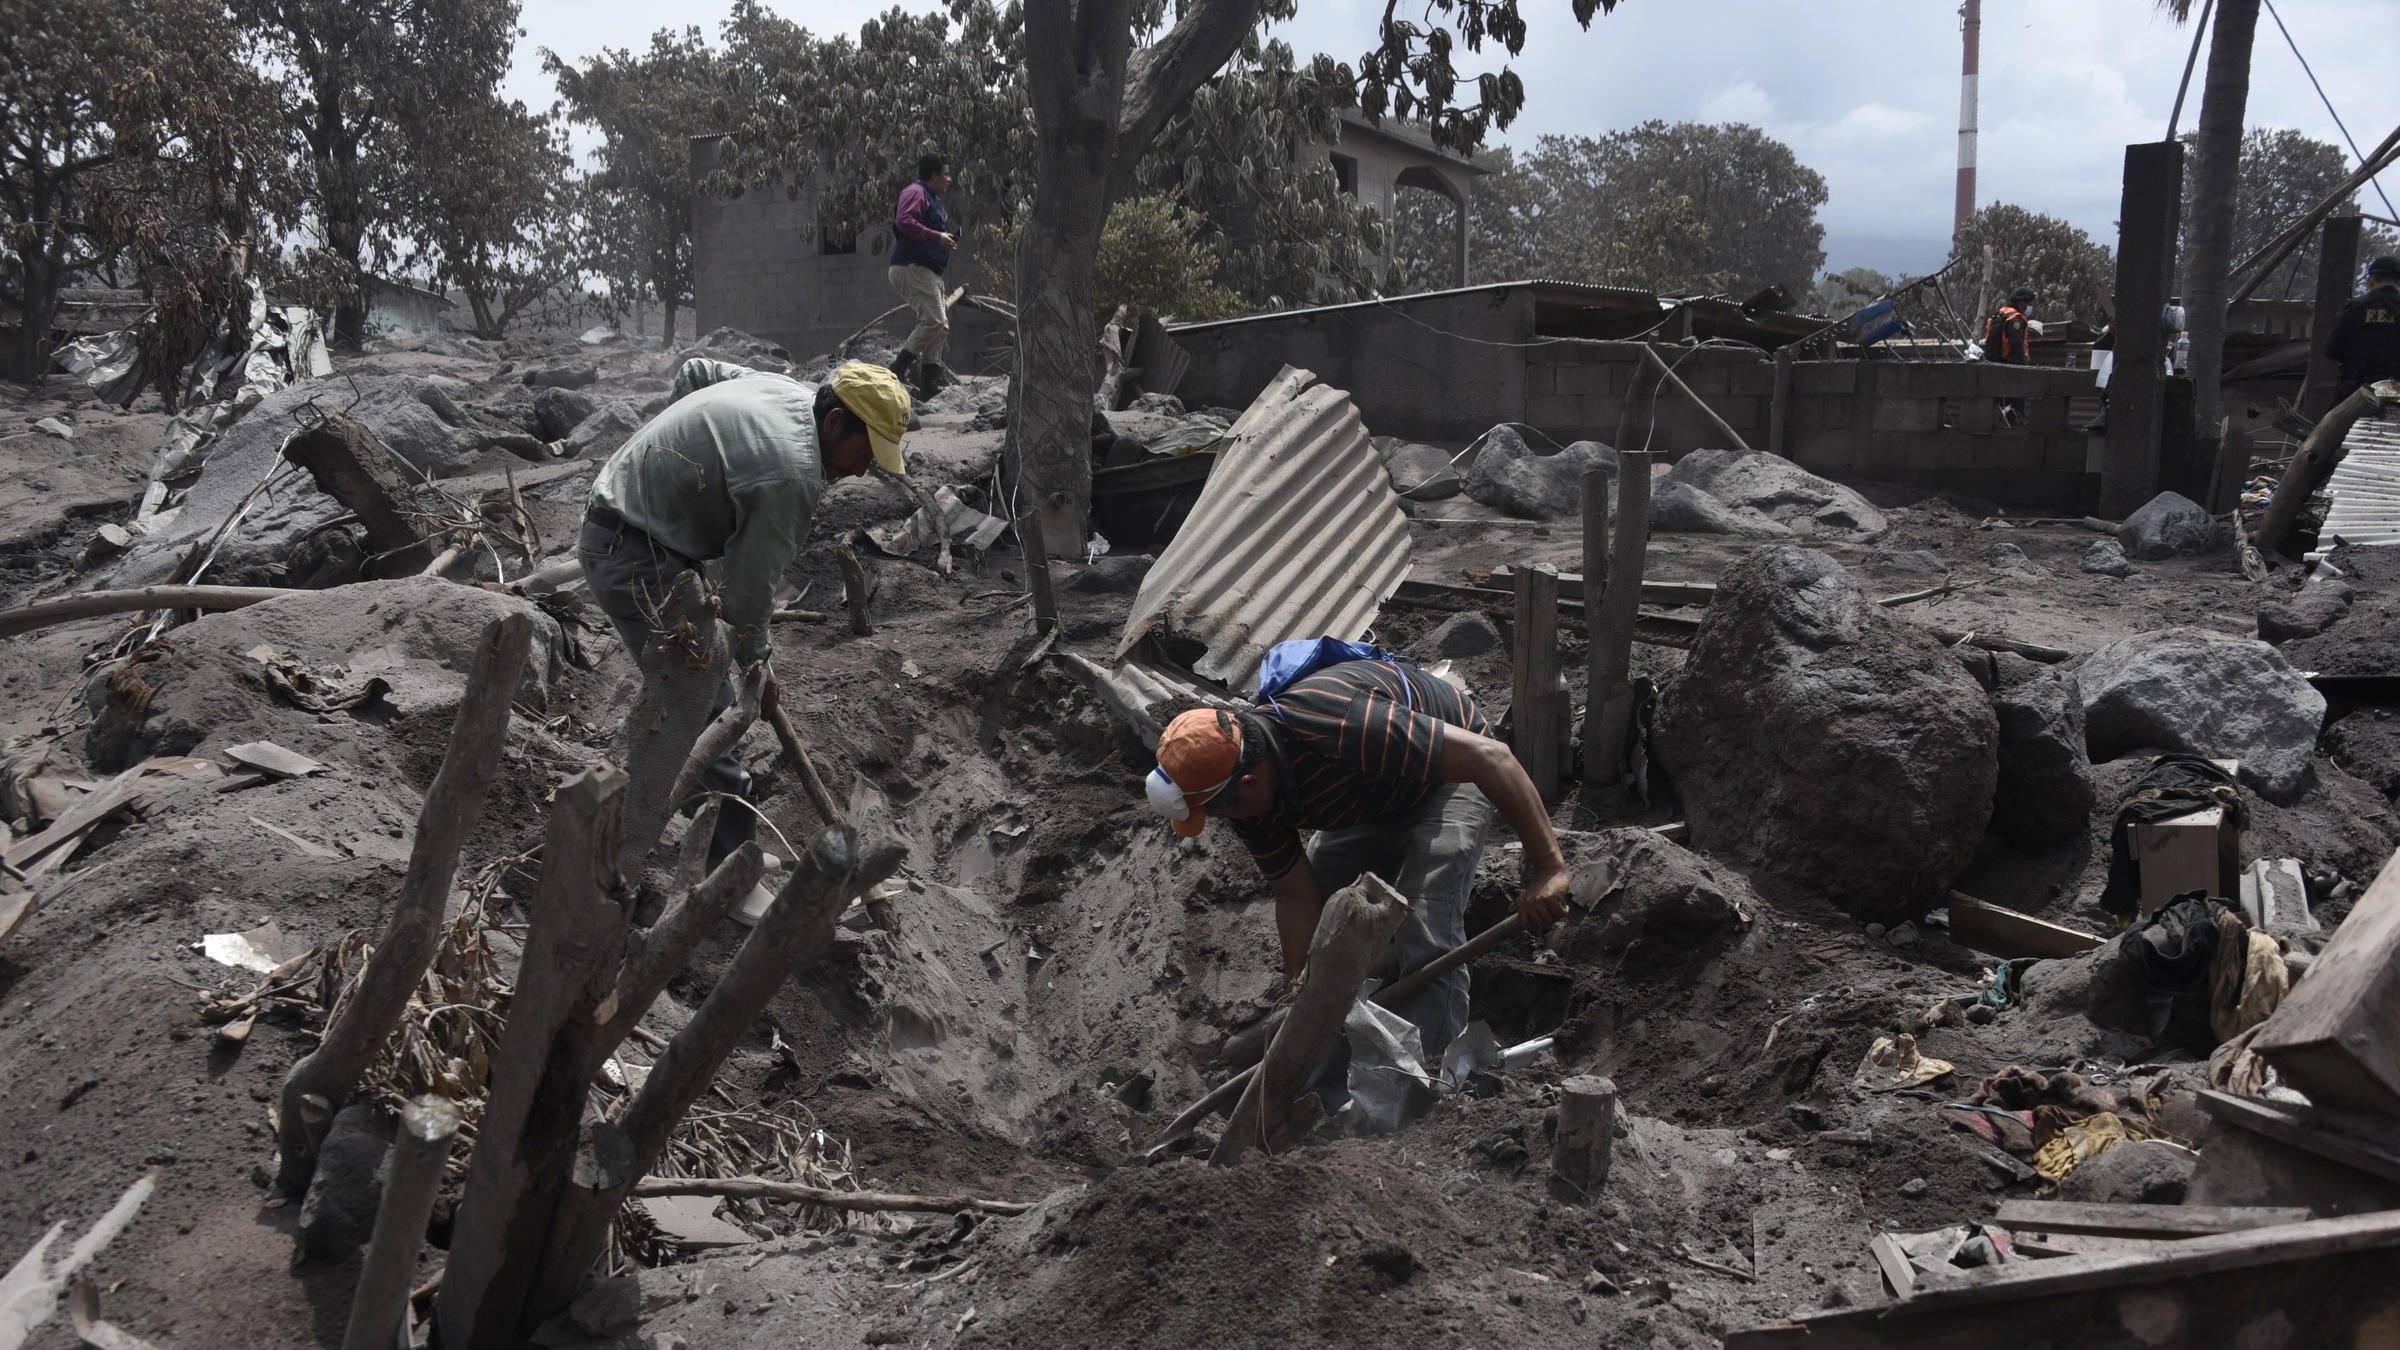 Residents search for victims of the Fuego volcano eruption in the ash-covered village of San Miguel Los Lotes in Escuintla about 20 miles southwest of Guatemala City on Thursday